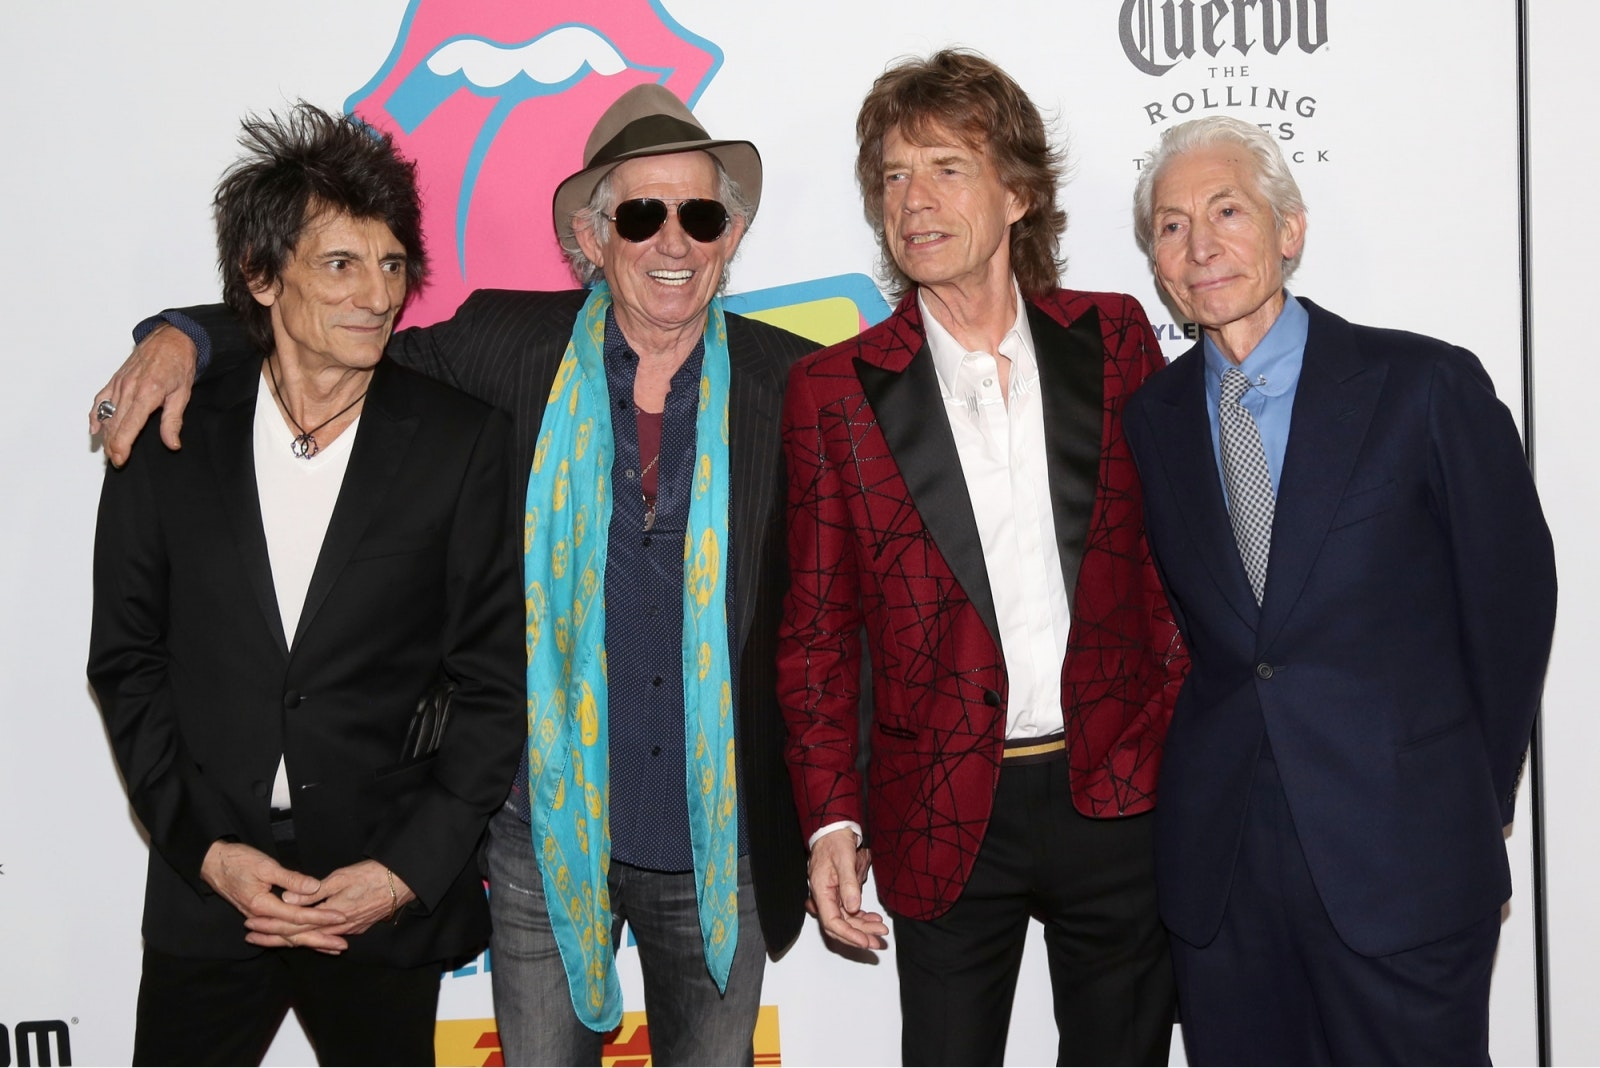 5 Reasons The Rolling Stones are the greatest rock band of all time